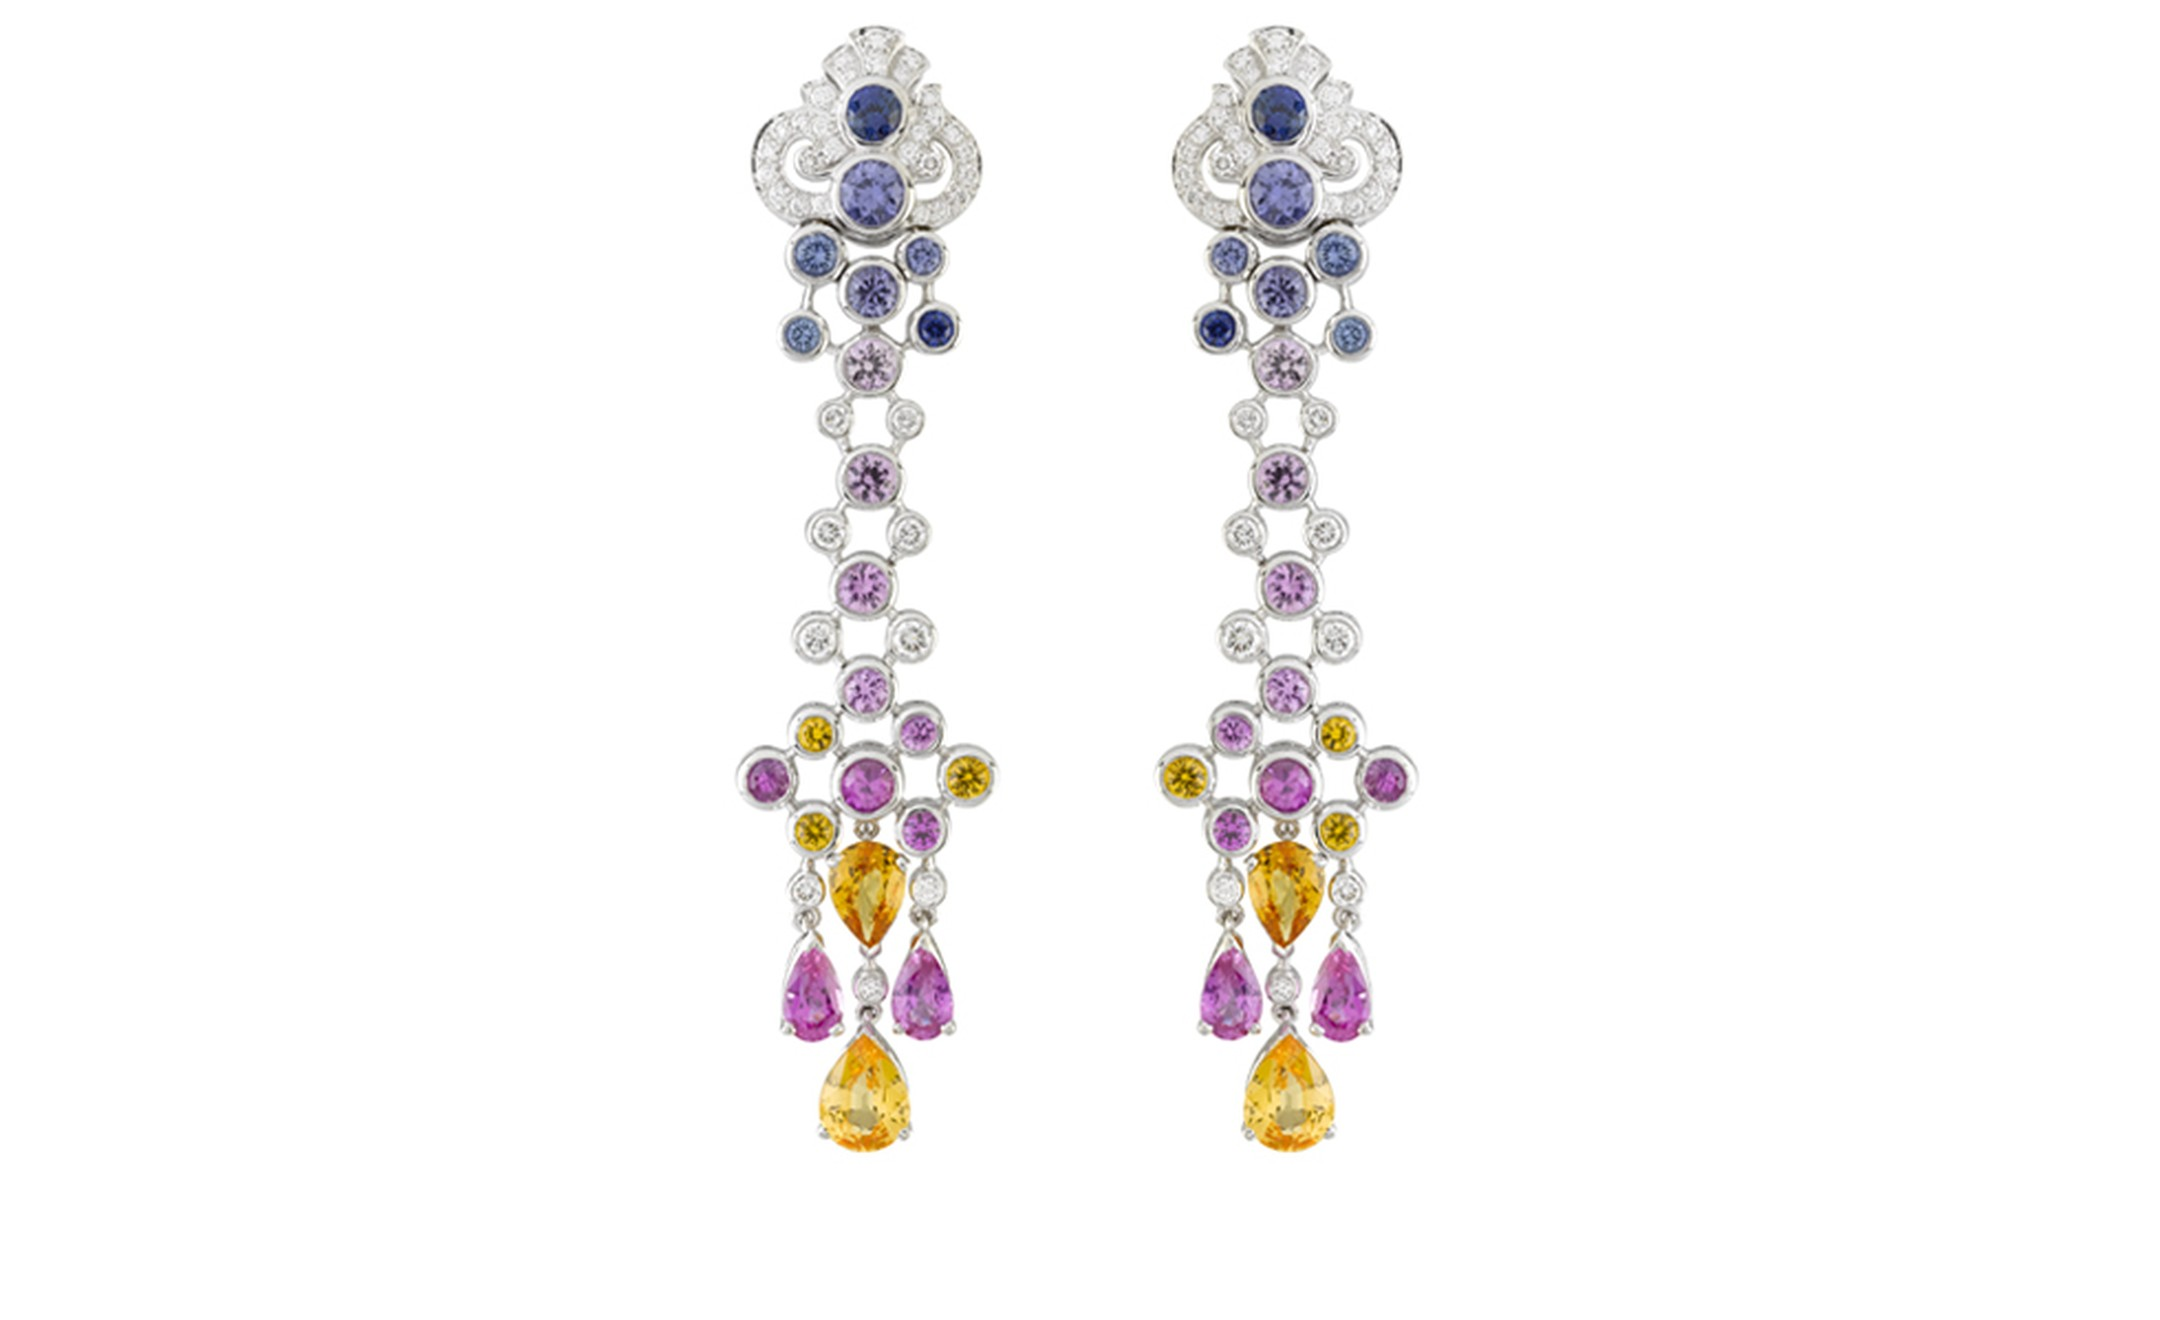 Van Cleef & Arpels, Bals de Légende, Le Bal Oriental, Faste earrings.